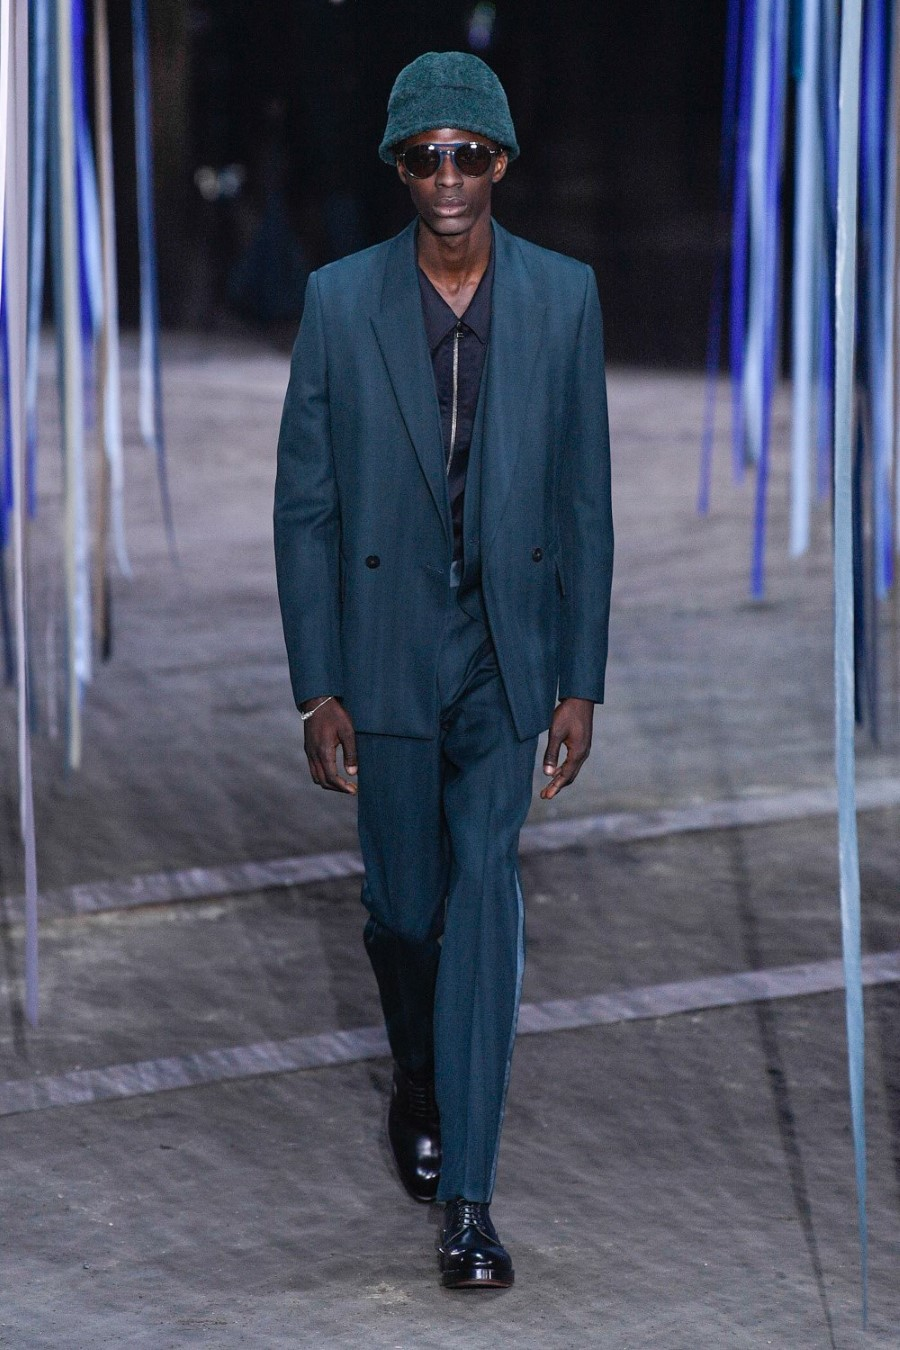 Ermenegildo Zegna - Fall/Winter 2020 - Milano Fashion Week Men's